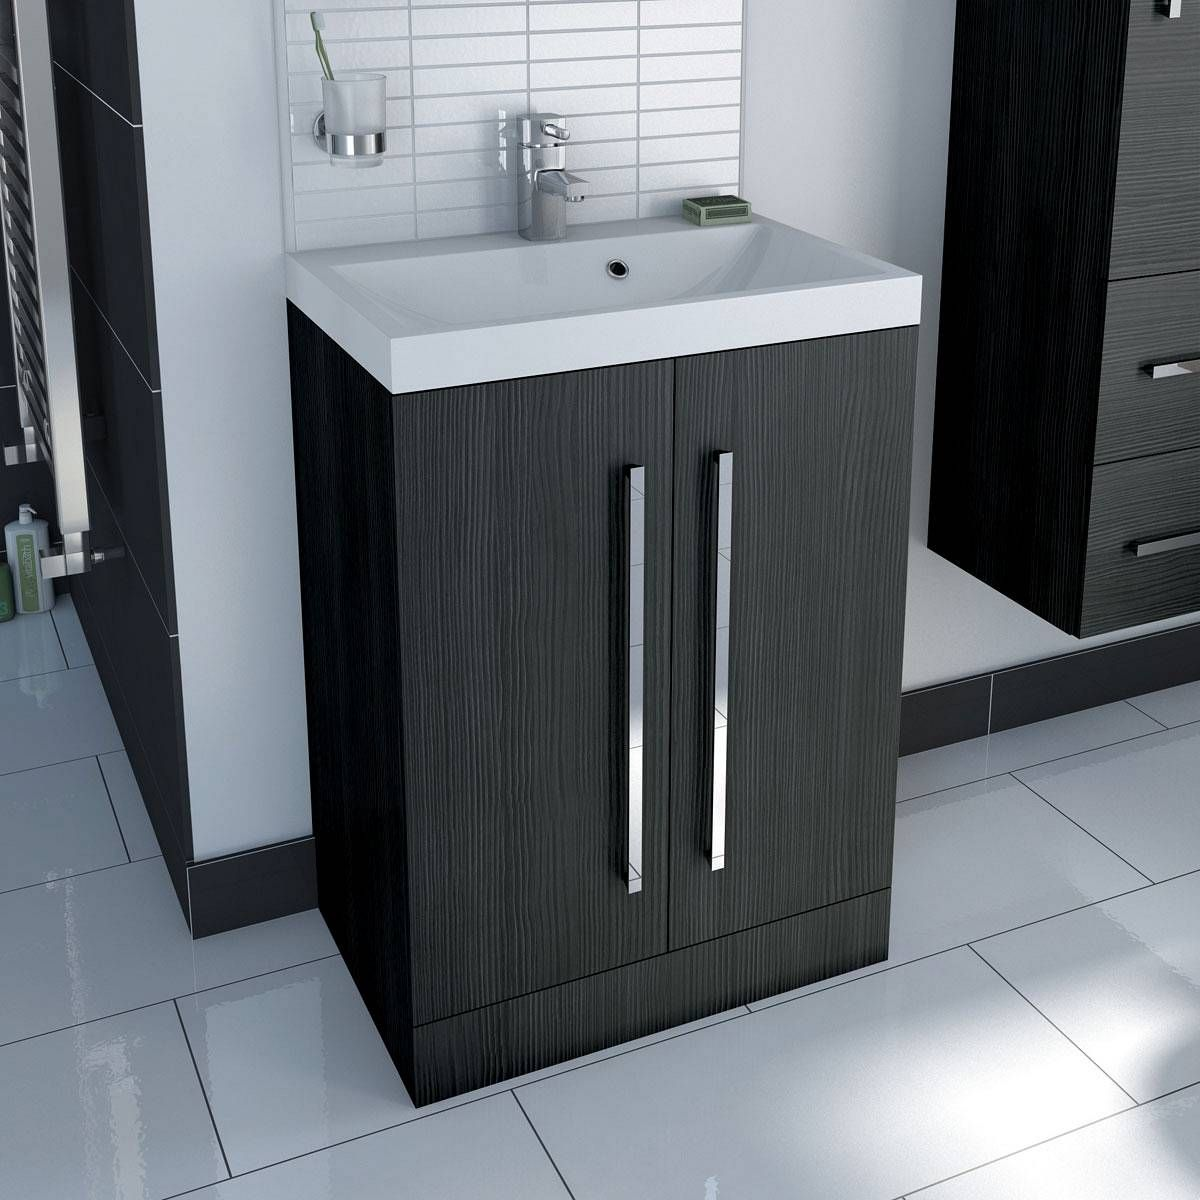 The Drift Grey Furniture Range Is A Superb Addition To Any Bathroom, With A  Contemporary